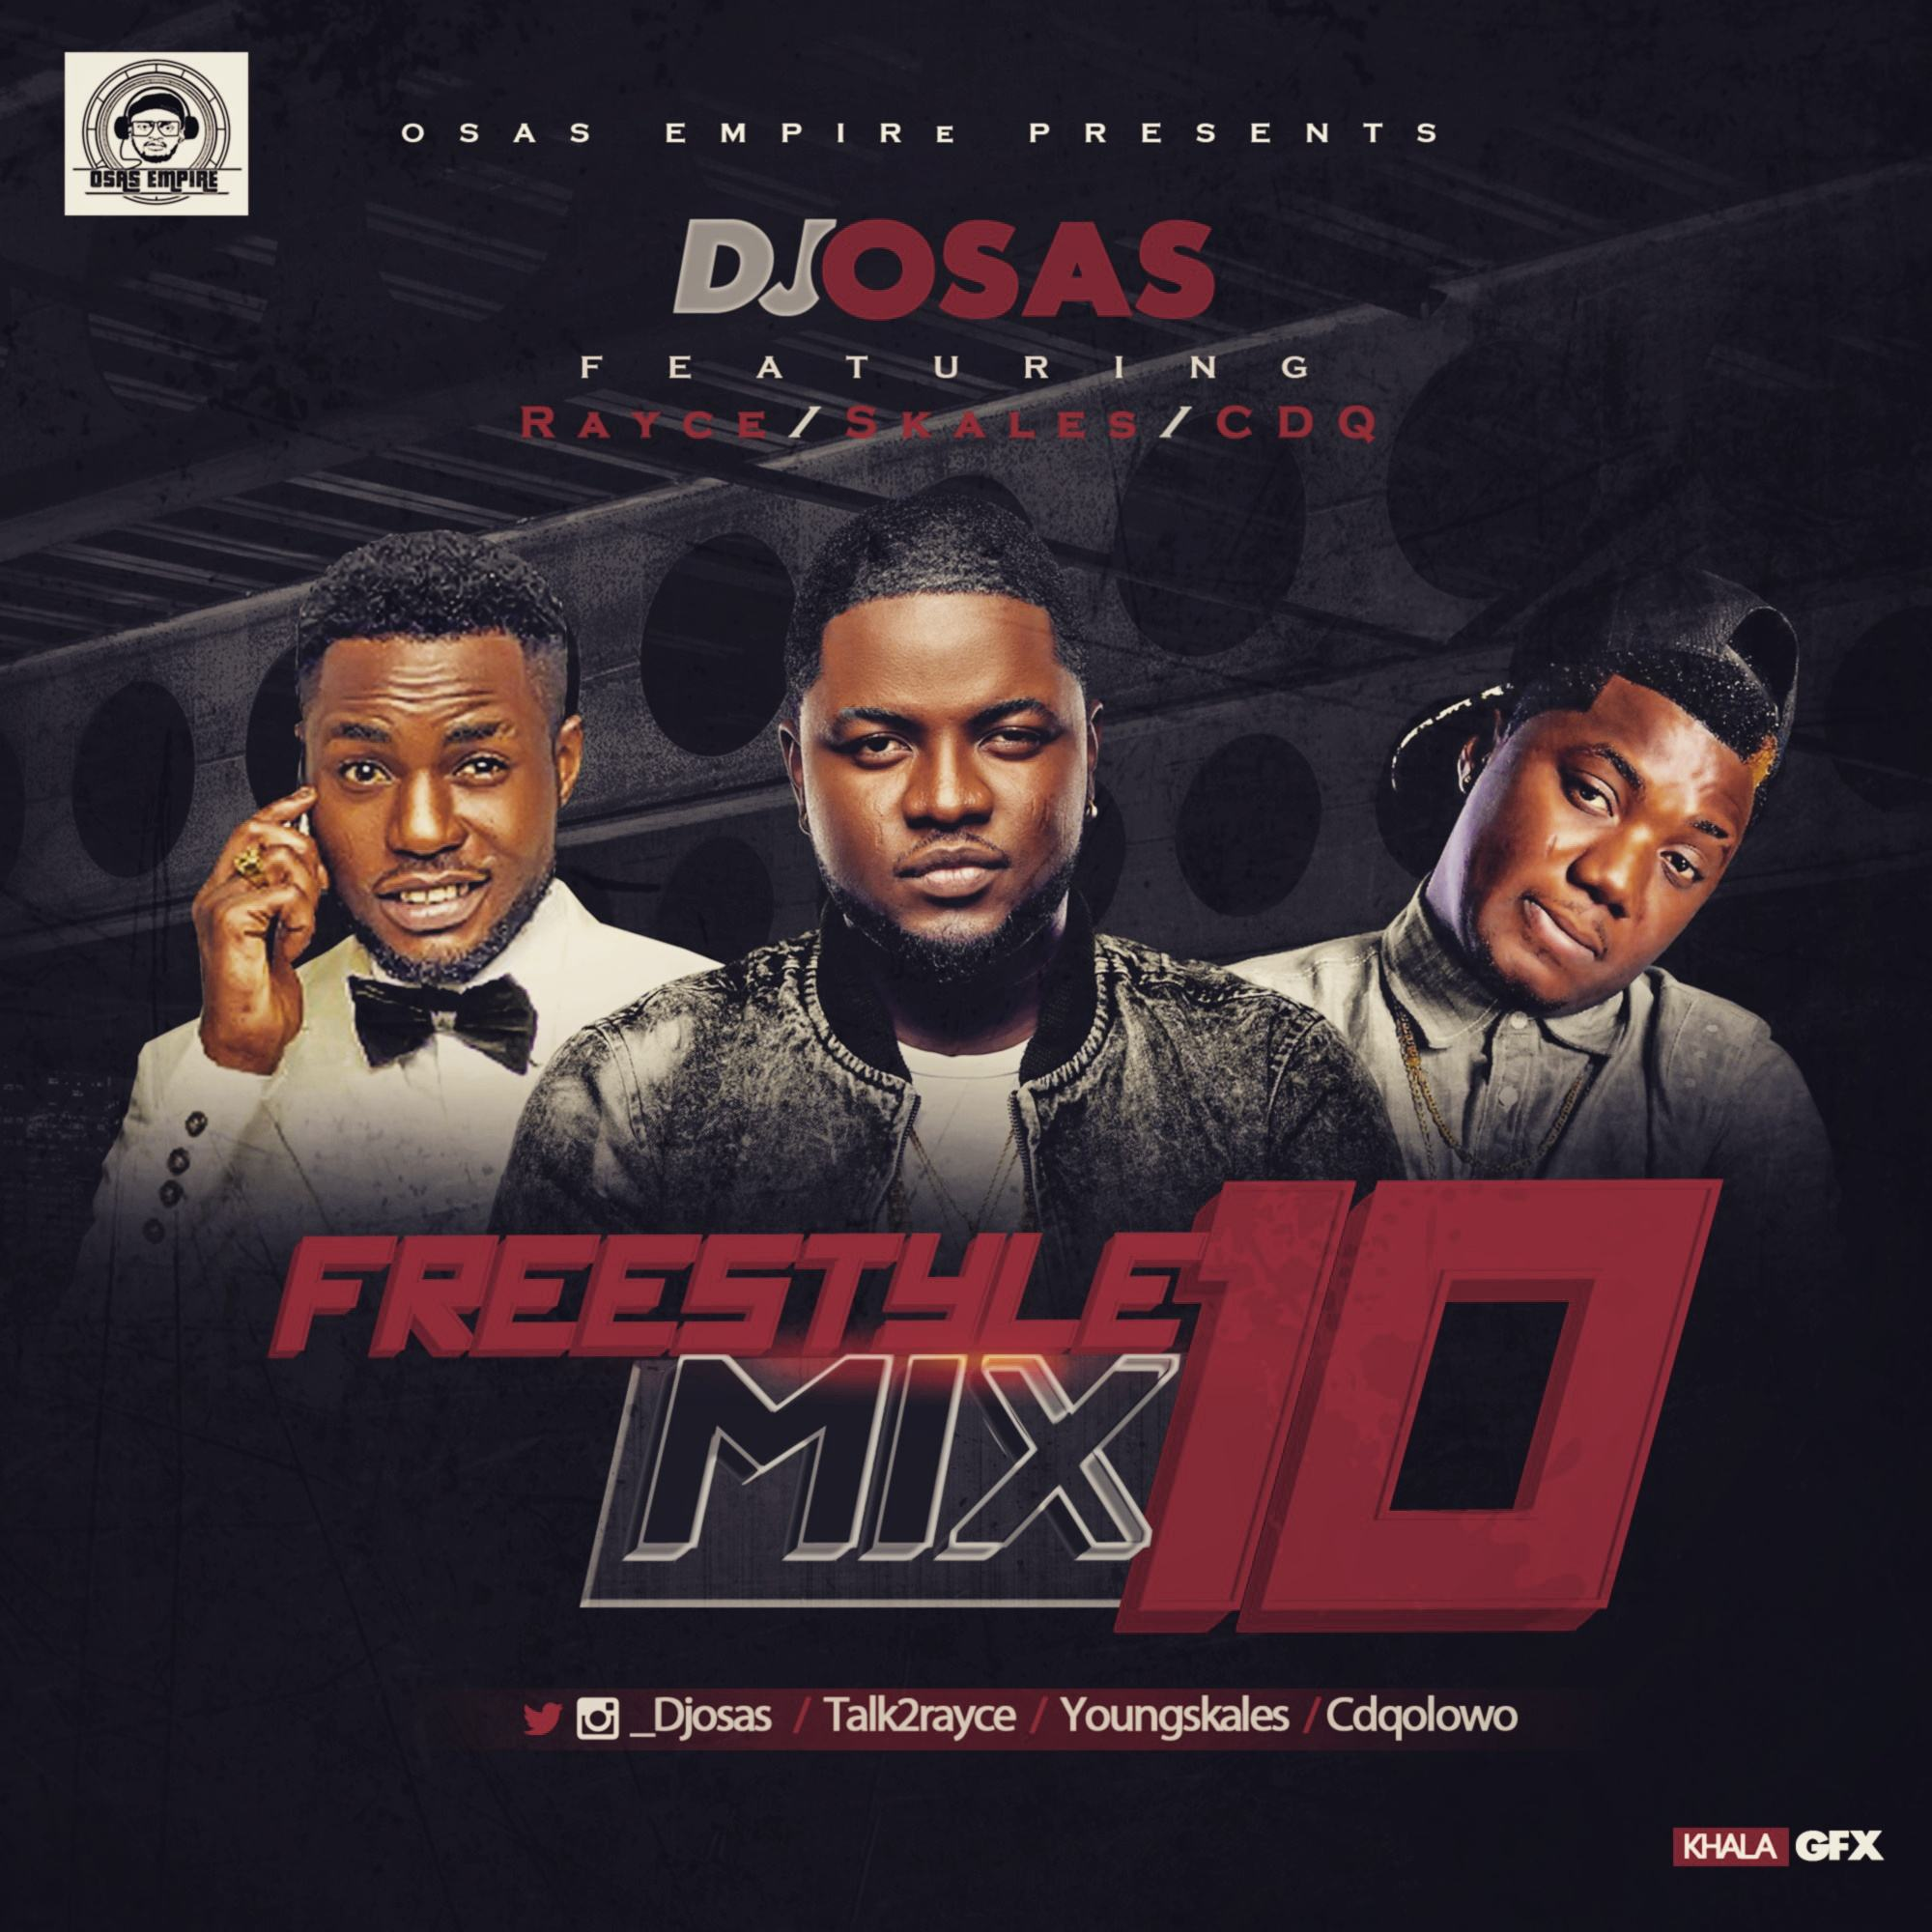 Dj Osas - Freestyle Mix ft Skales, Rayce & CDQ